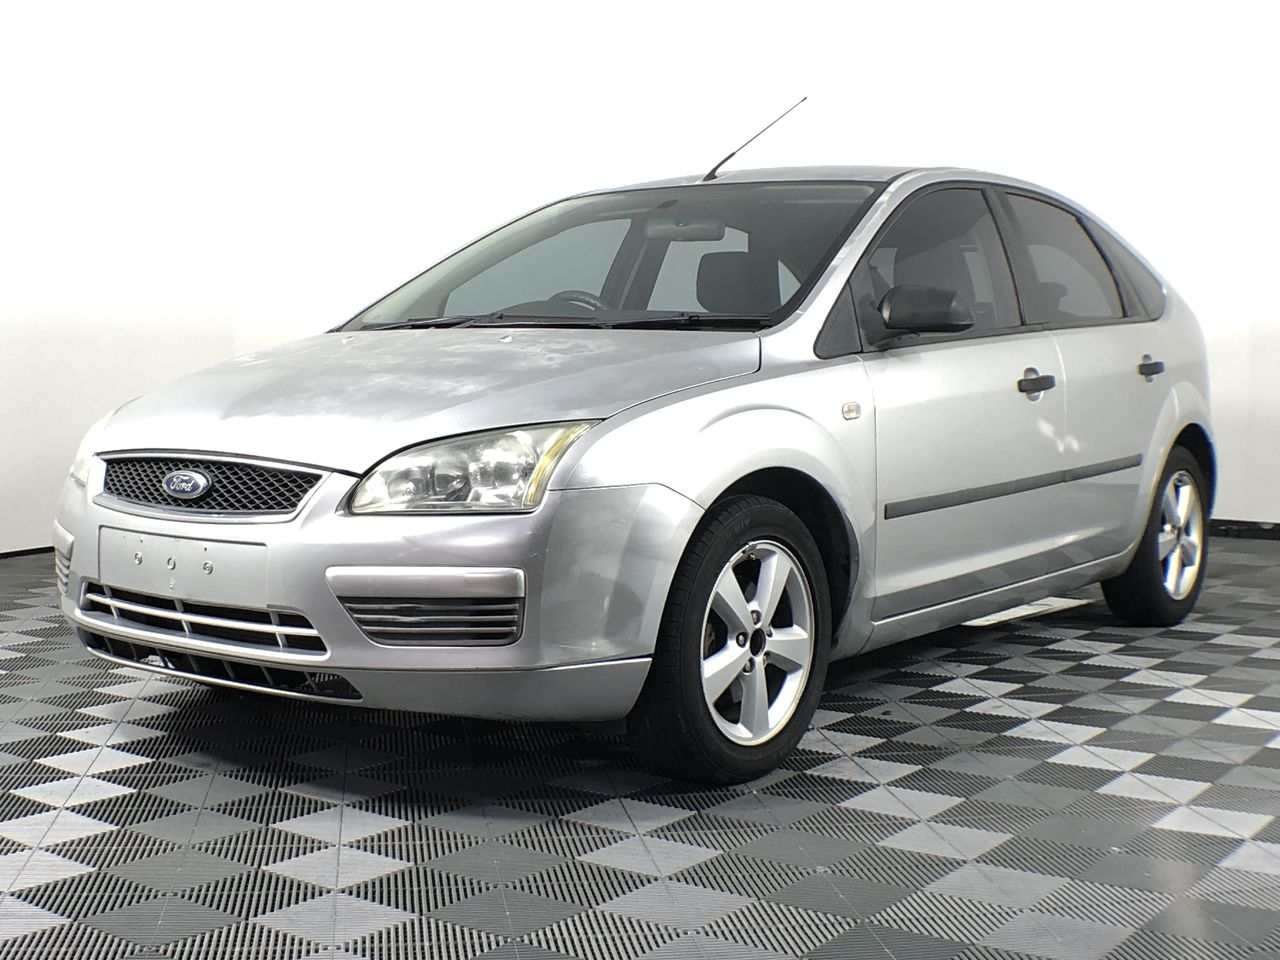 2005 Ford Focus CL LS Manual Hatchback (WOVR-REPAIRABLE)